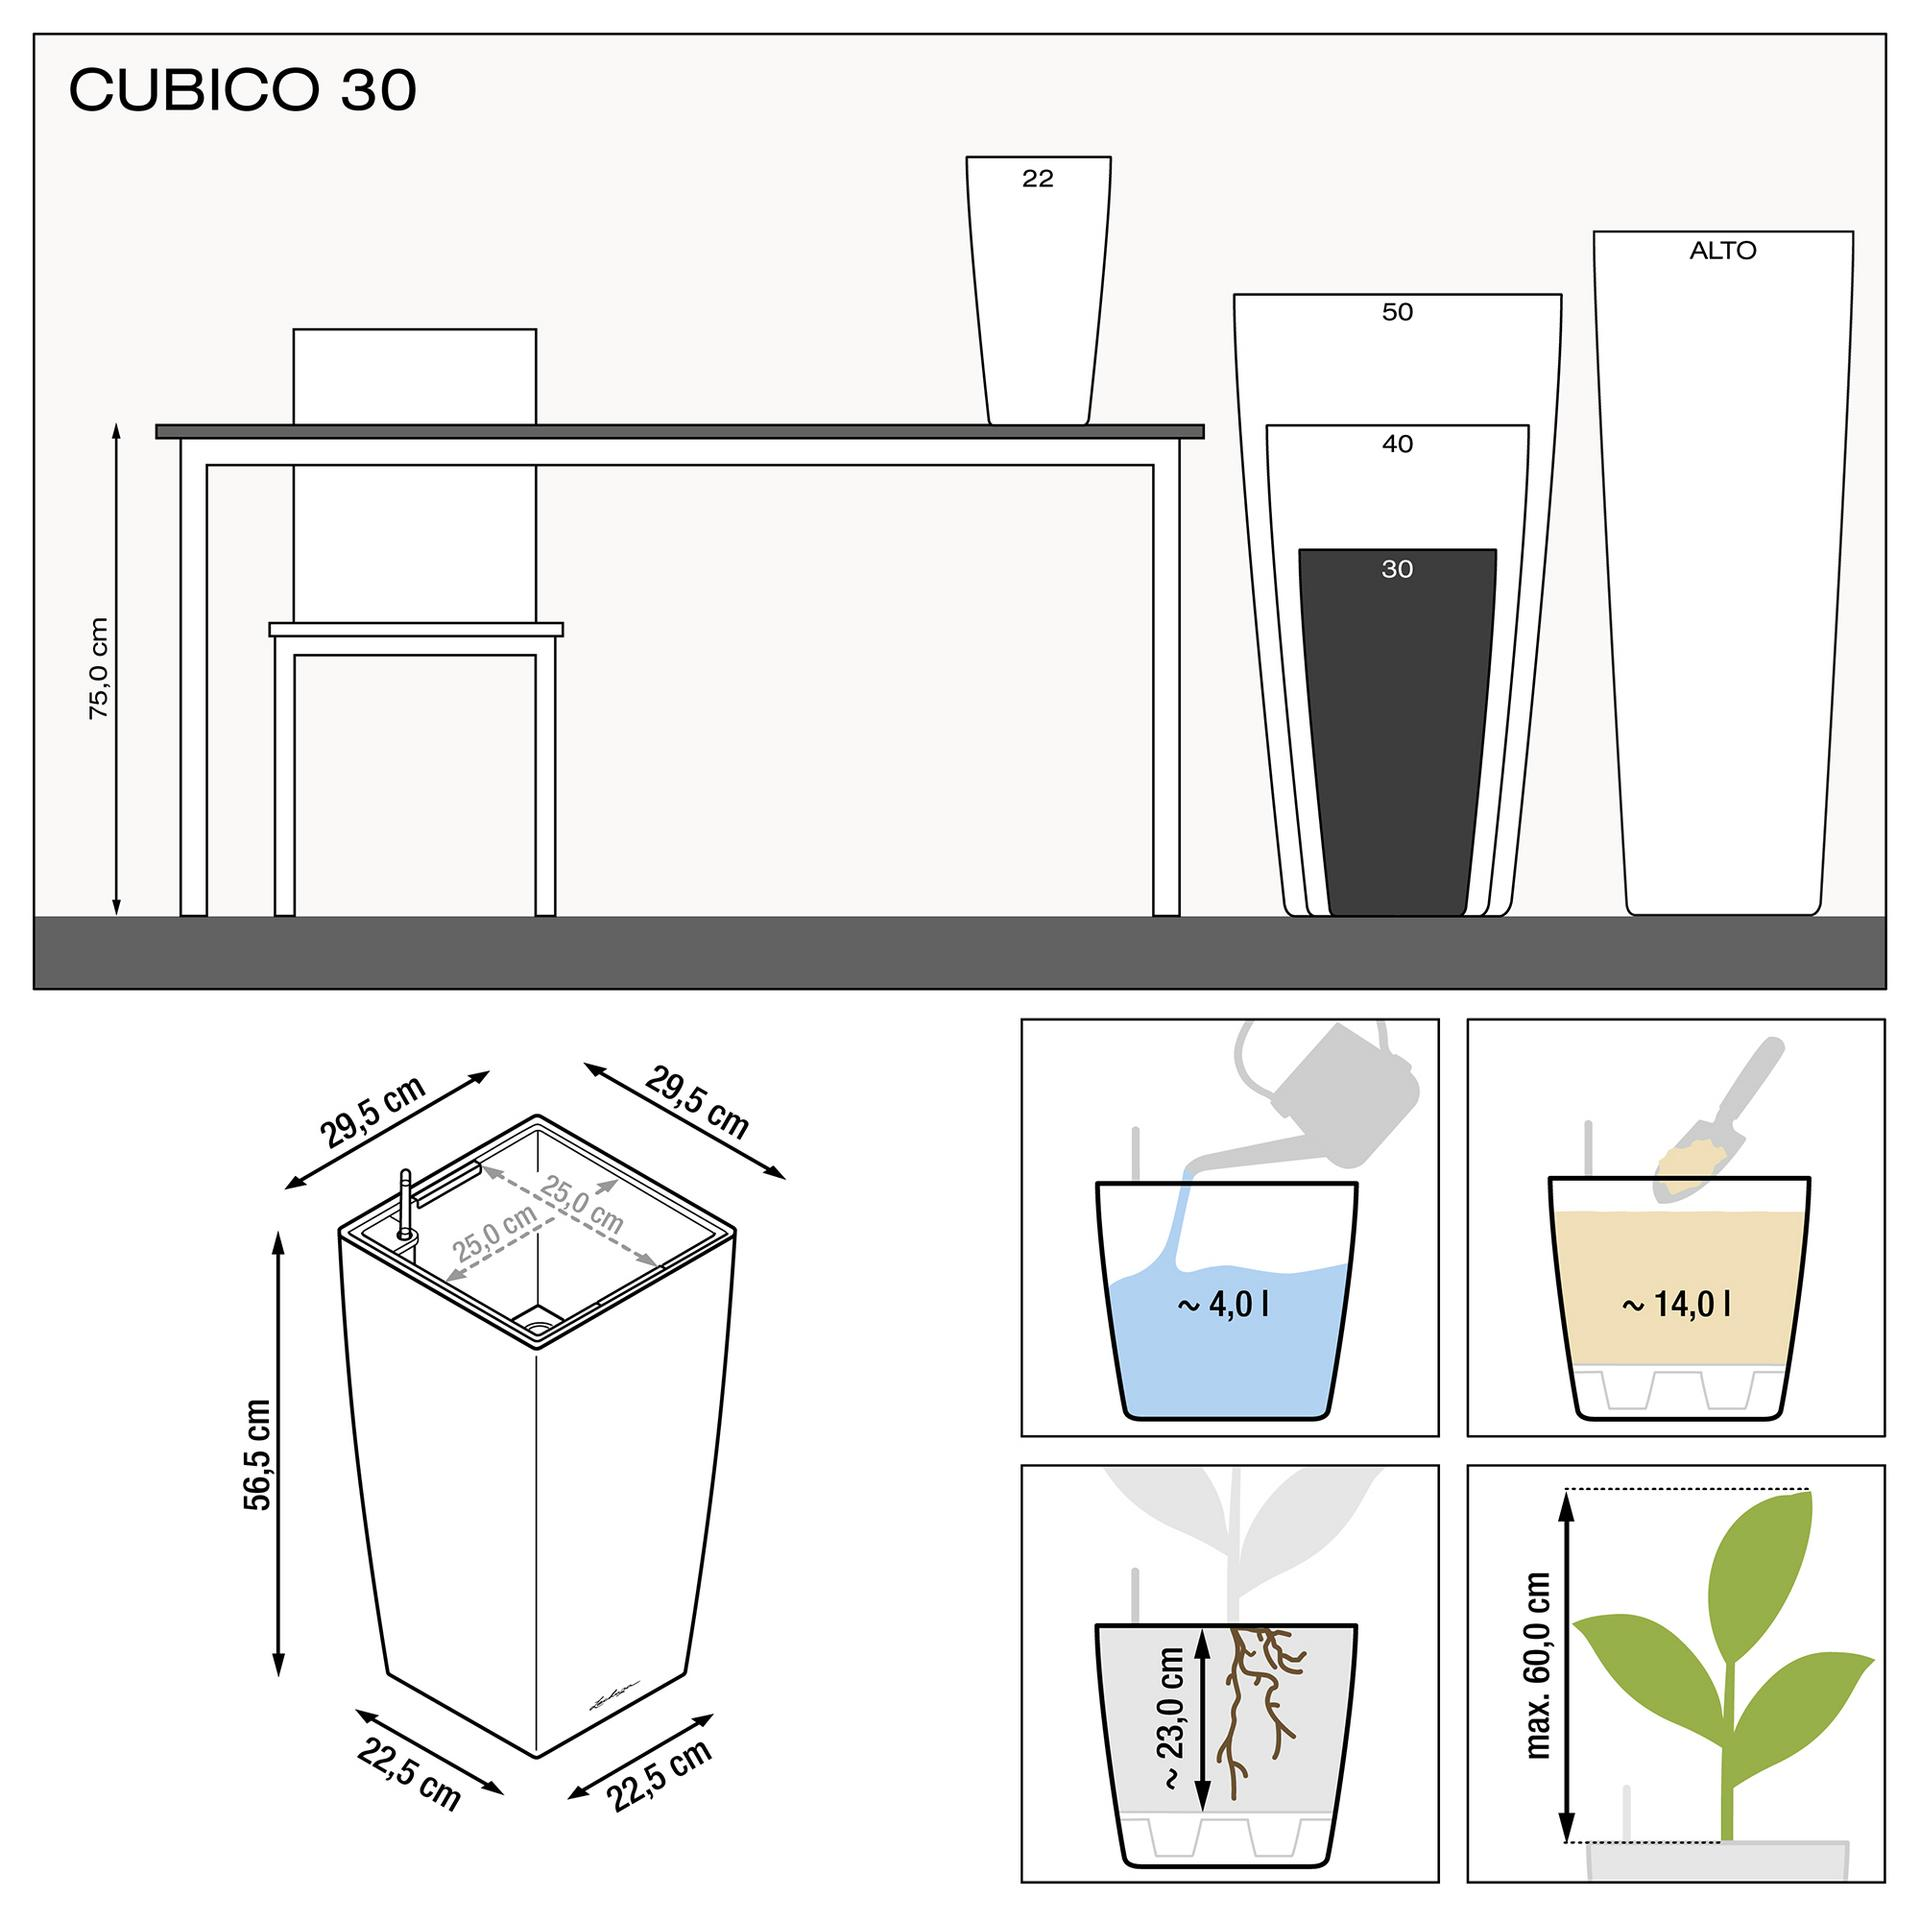 le_cubico30_product_addi_nz